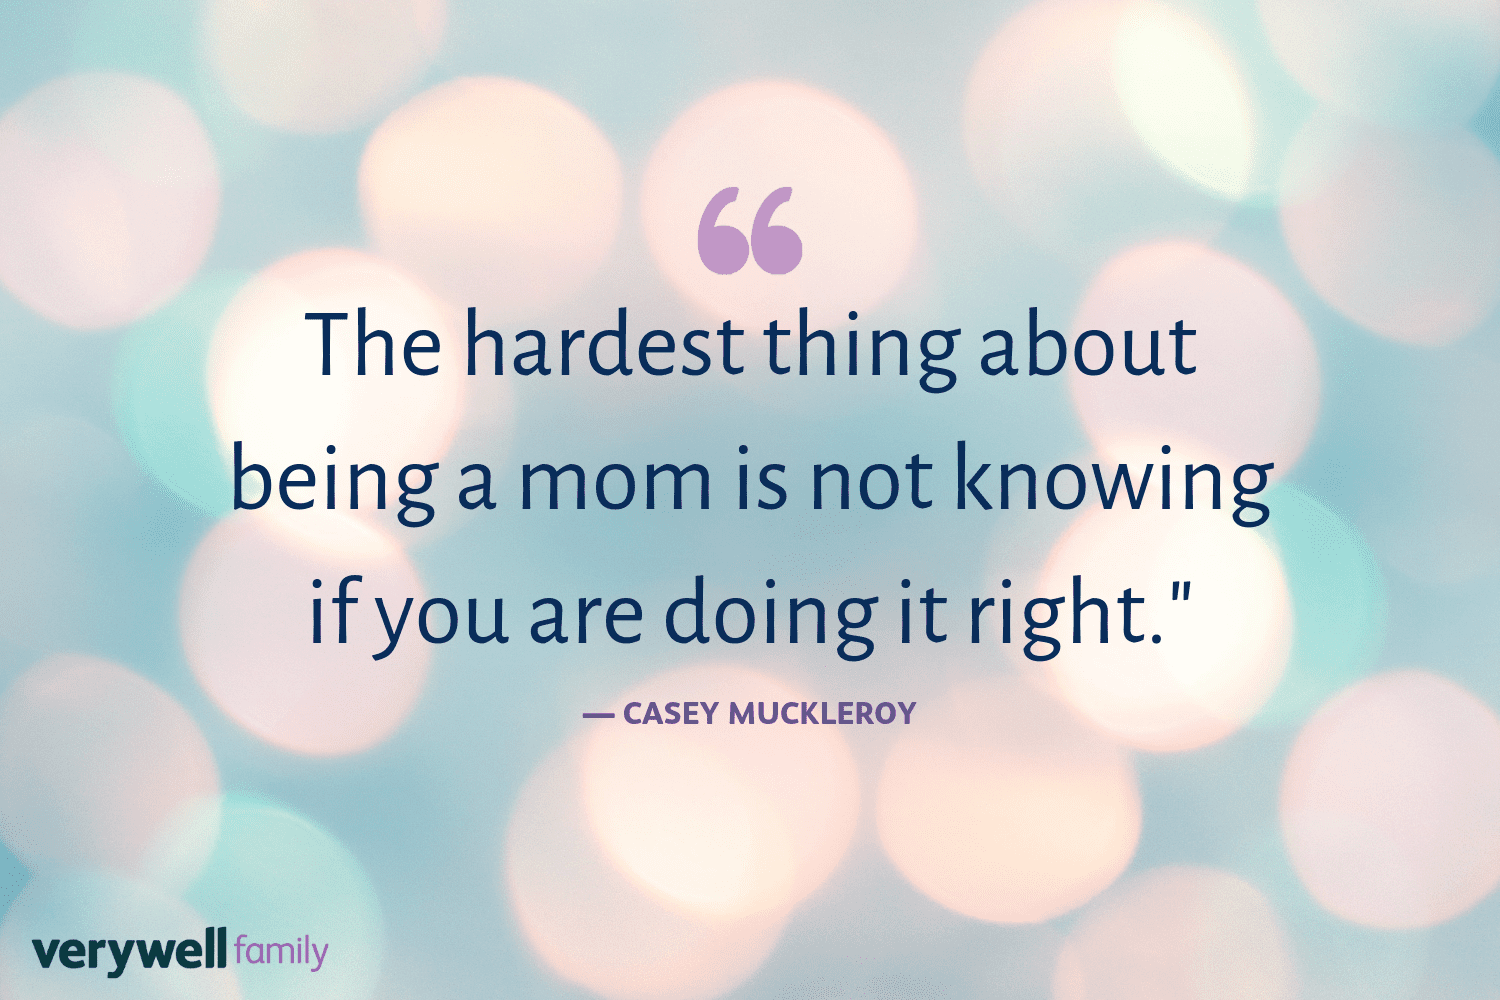 Verywell Family postpartum quote by Casey Muckleroy